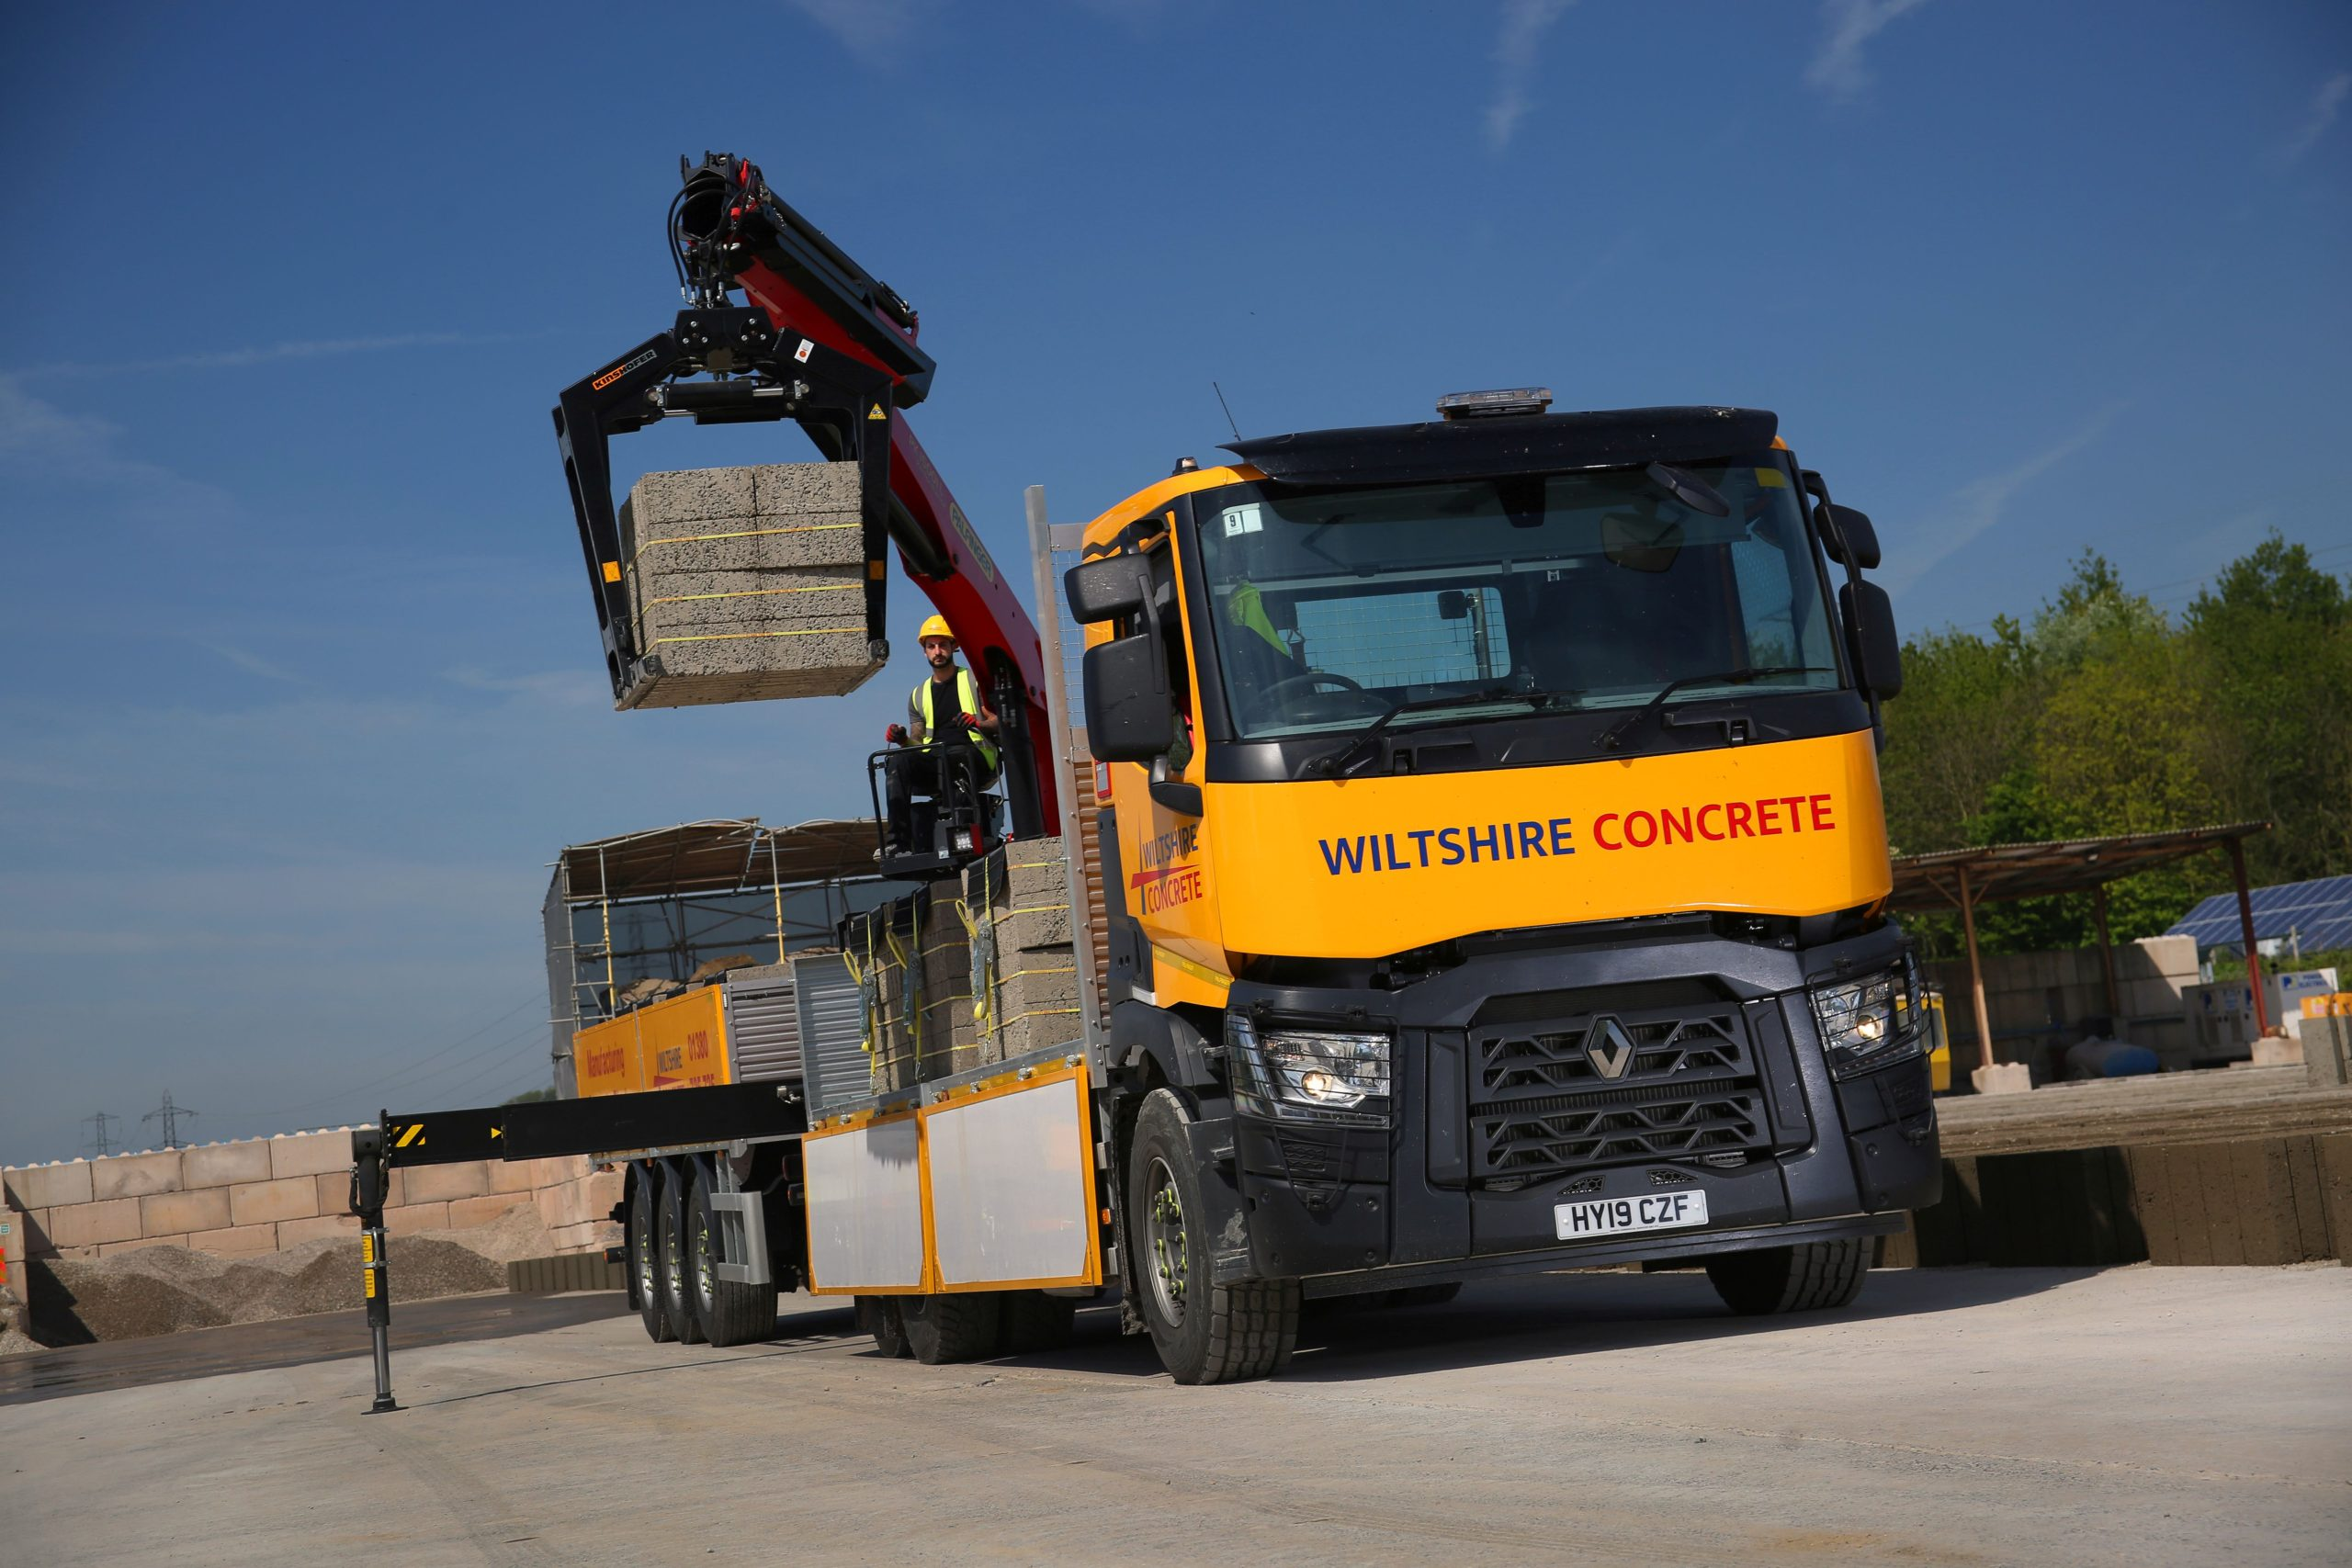 Concrete Block Delivery from Wiltshire Concrete